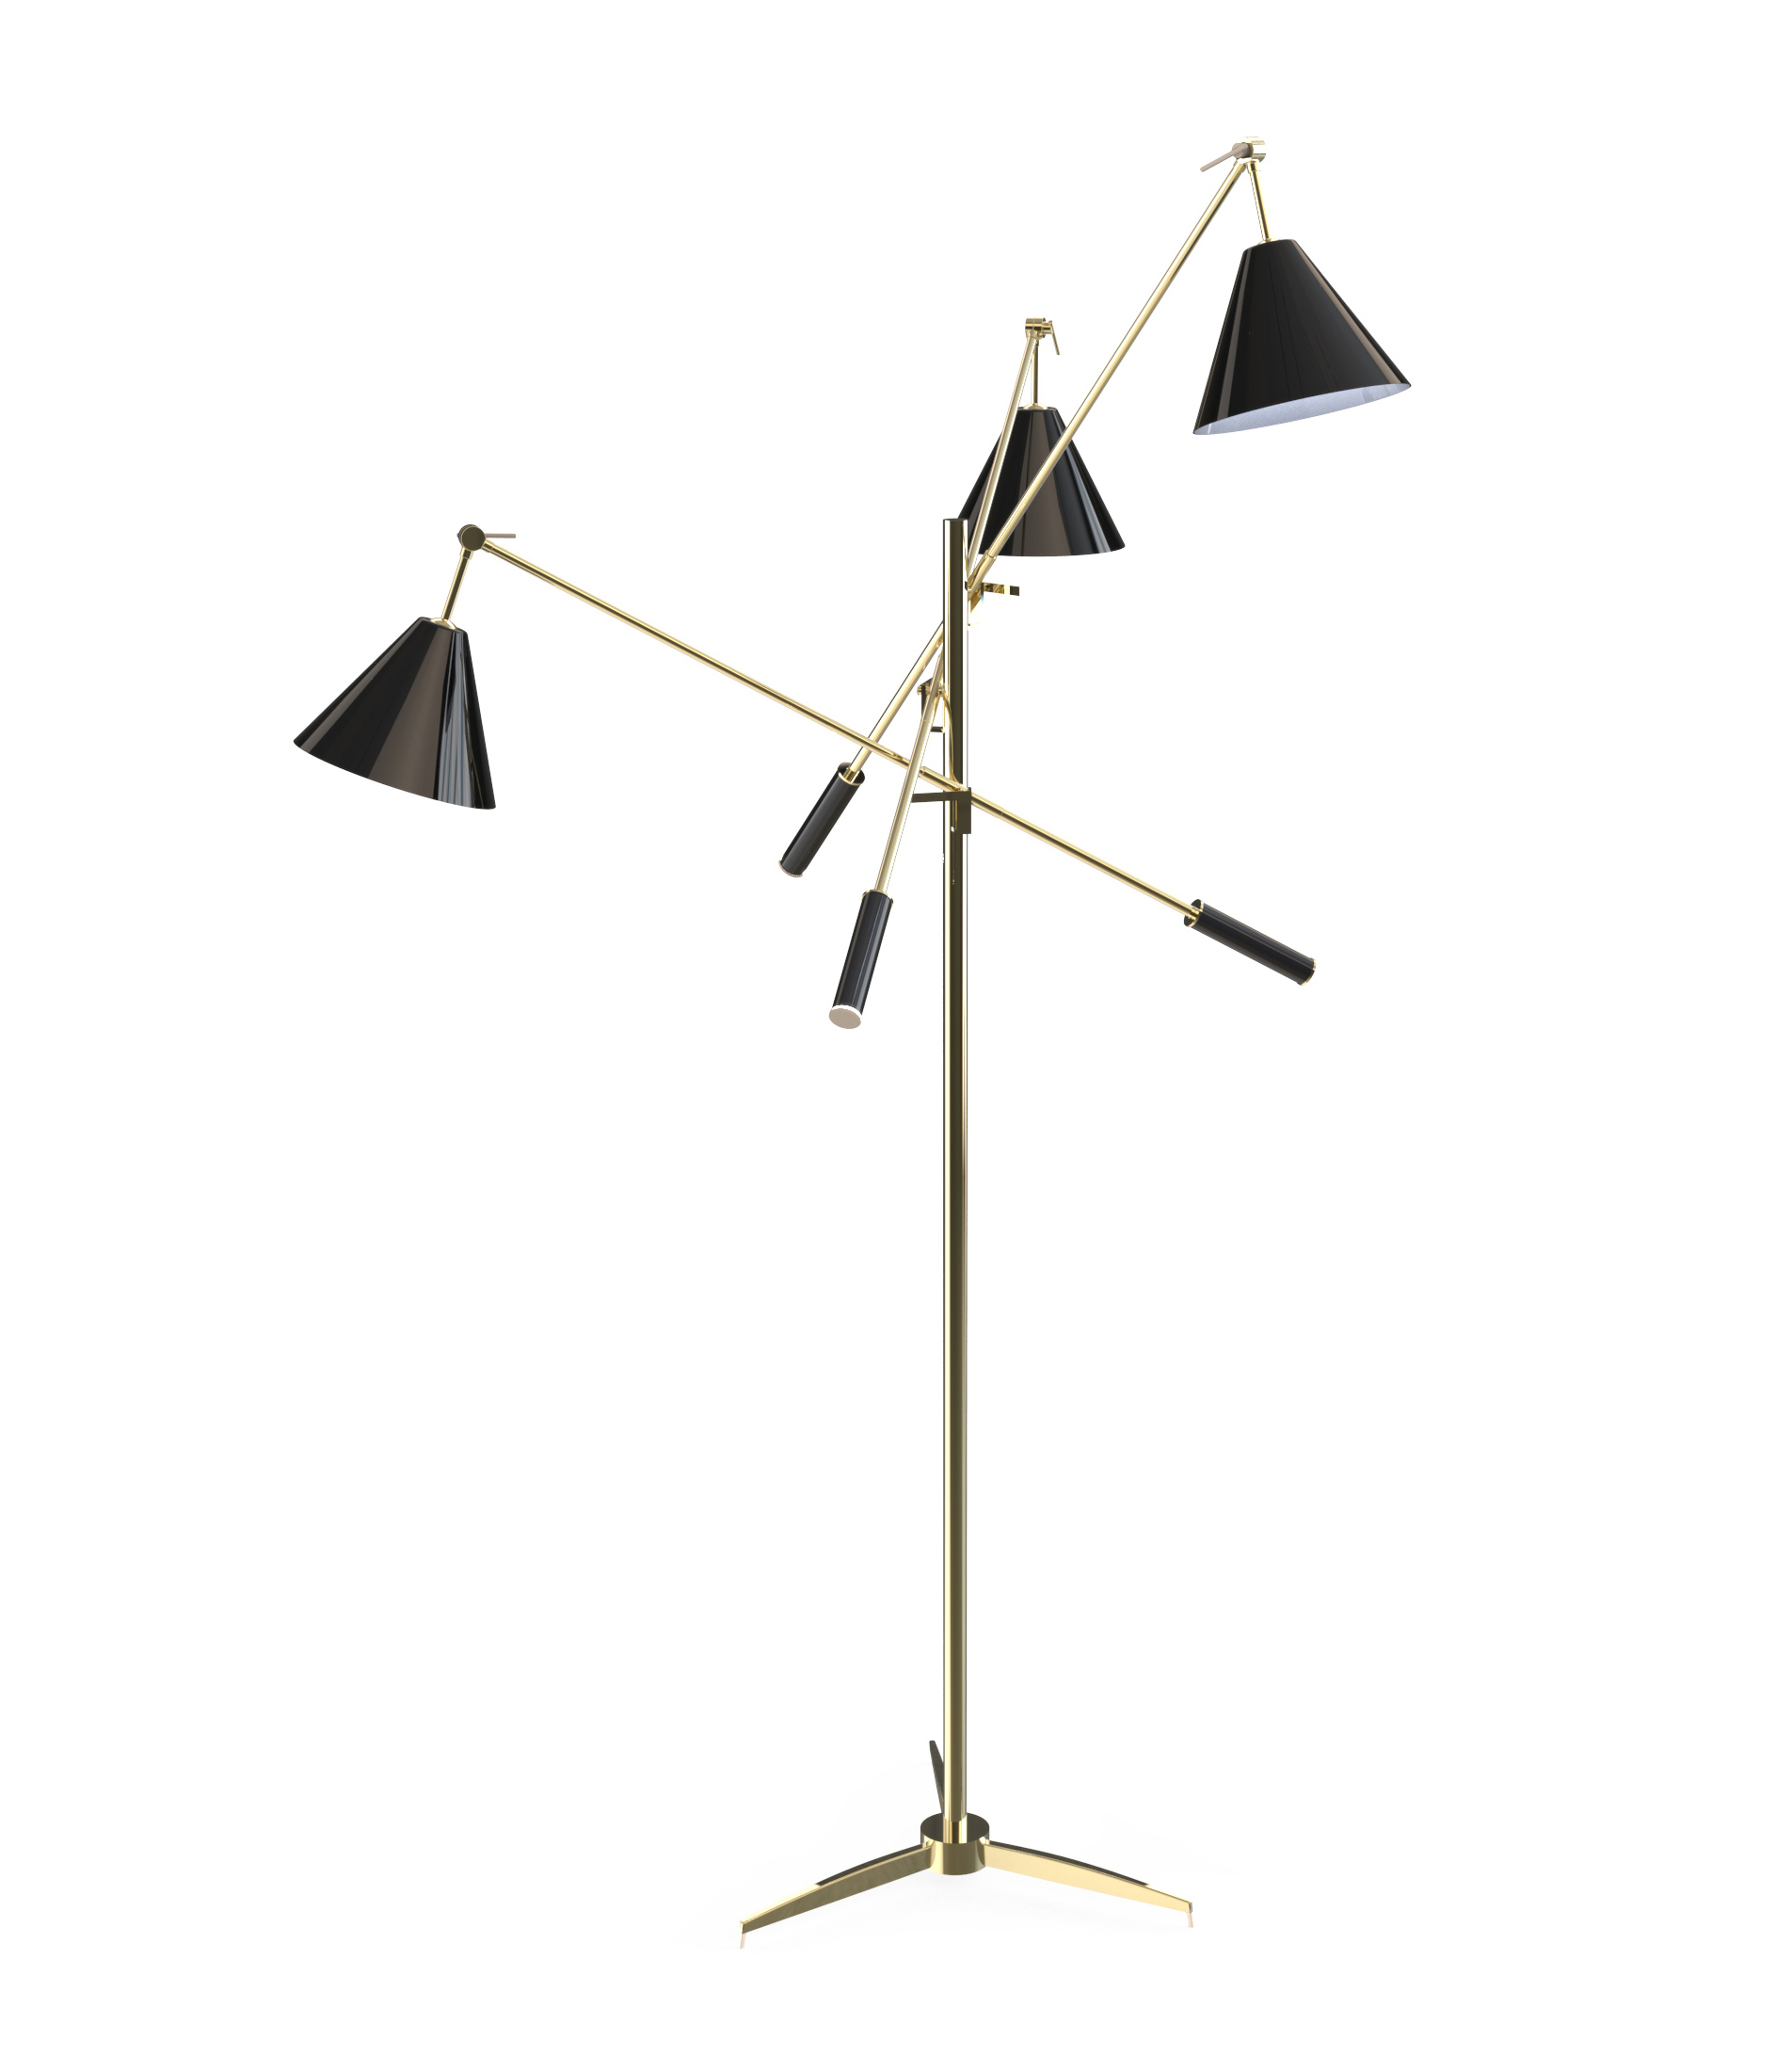 Ready To Get Your Dream Home With This Mid-Century Lamps 4 mid-century lamps Ready To Get Your Dream Home With This Mid-Century Lamps? Ready To Get Your Dream Home With This Mid Century Lamps 4